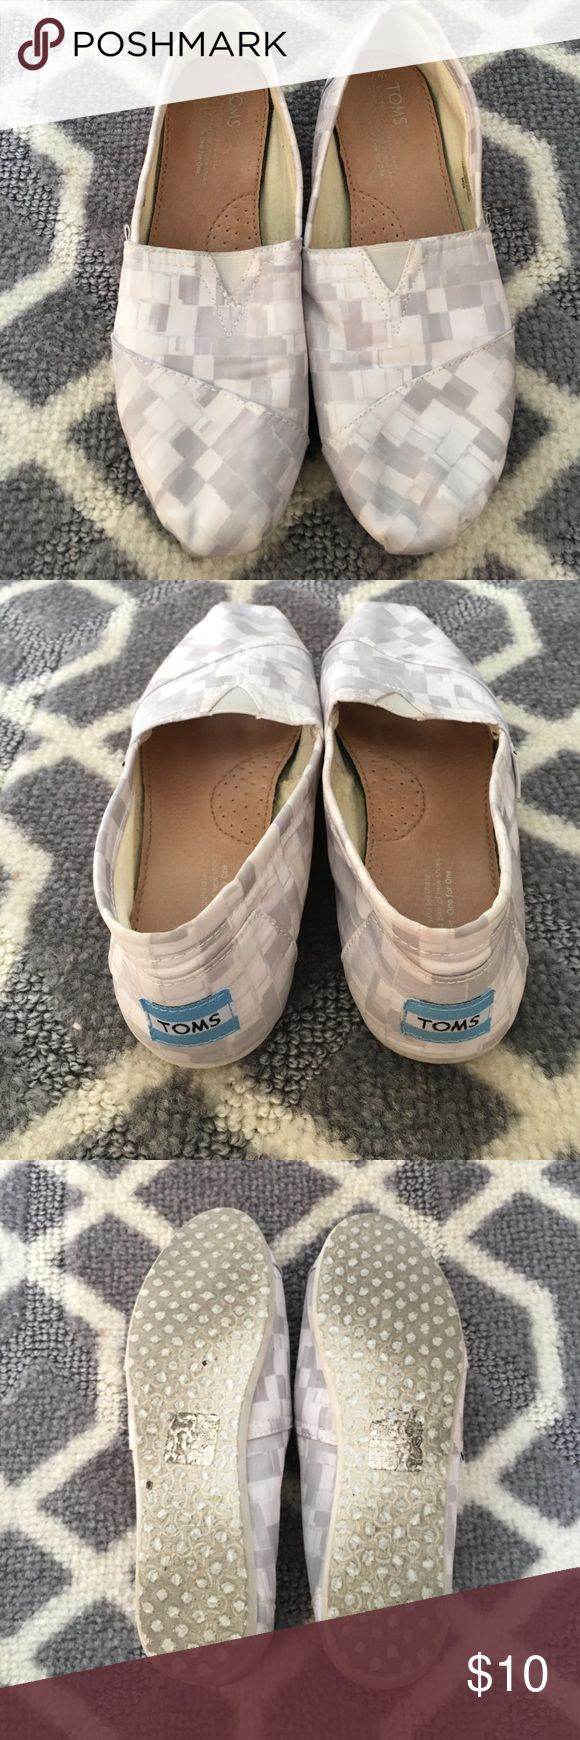 White and gray TOMS Hardly worn white and gray TOMS! In great condition, take a look at all the pictures. Everyone loves a good pair of TOMS! TOMS Shoes Flats & Loafers